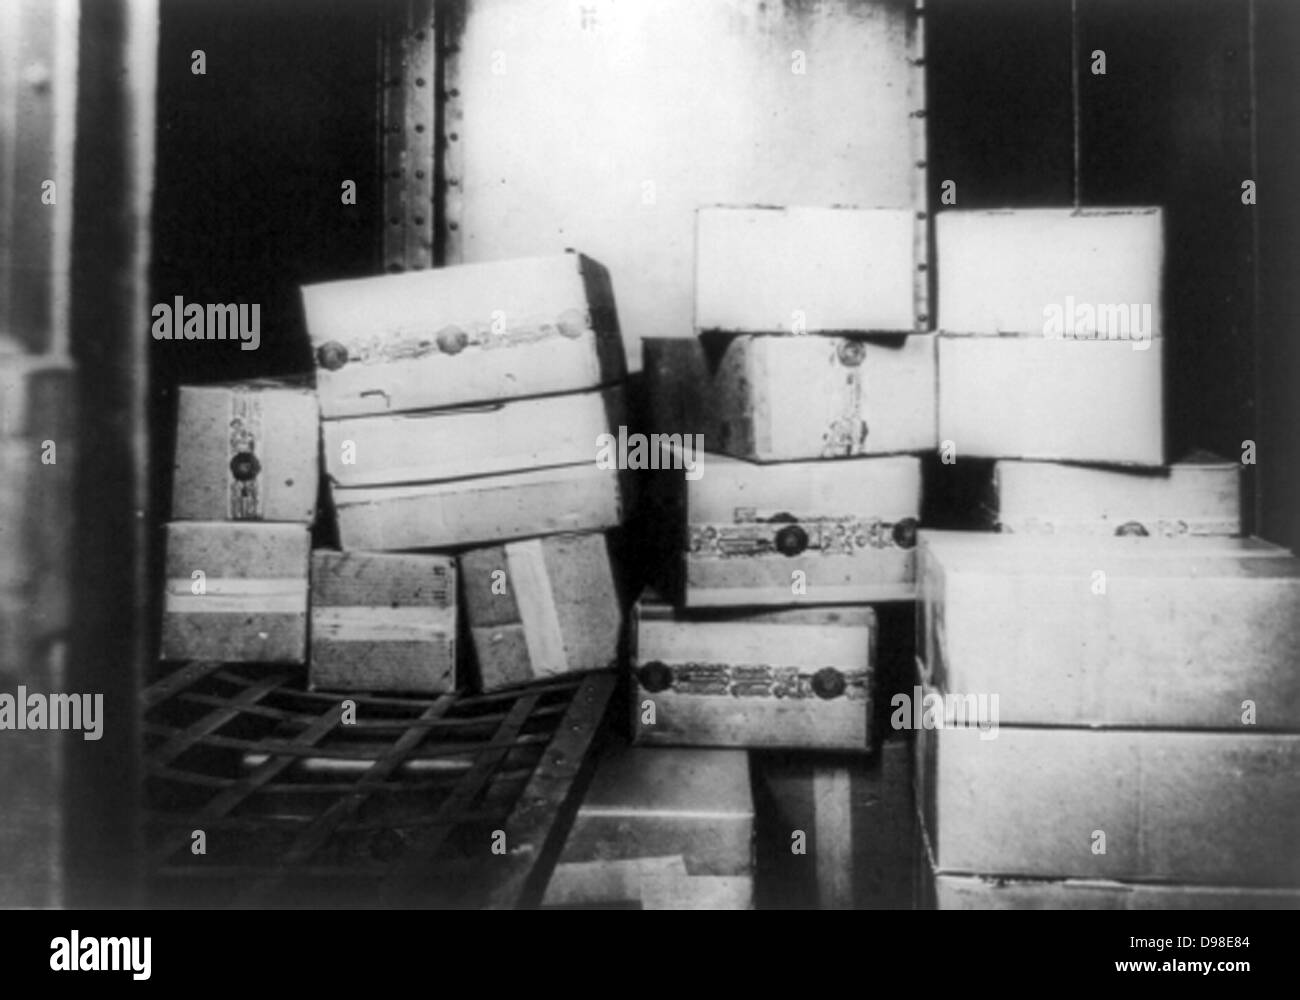 Prohibition or The Noble Experiment 1919-1933: Cases of Whiskey confiscated by the US Internal Revenue Bureau, 1920s. - Stock Image